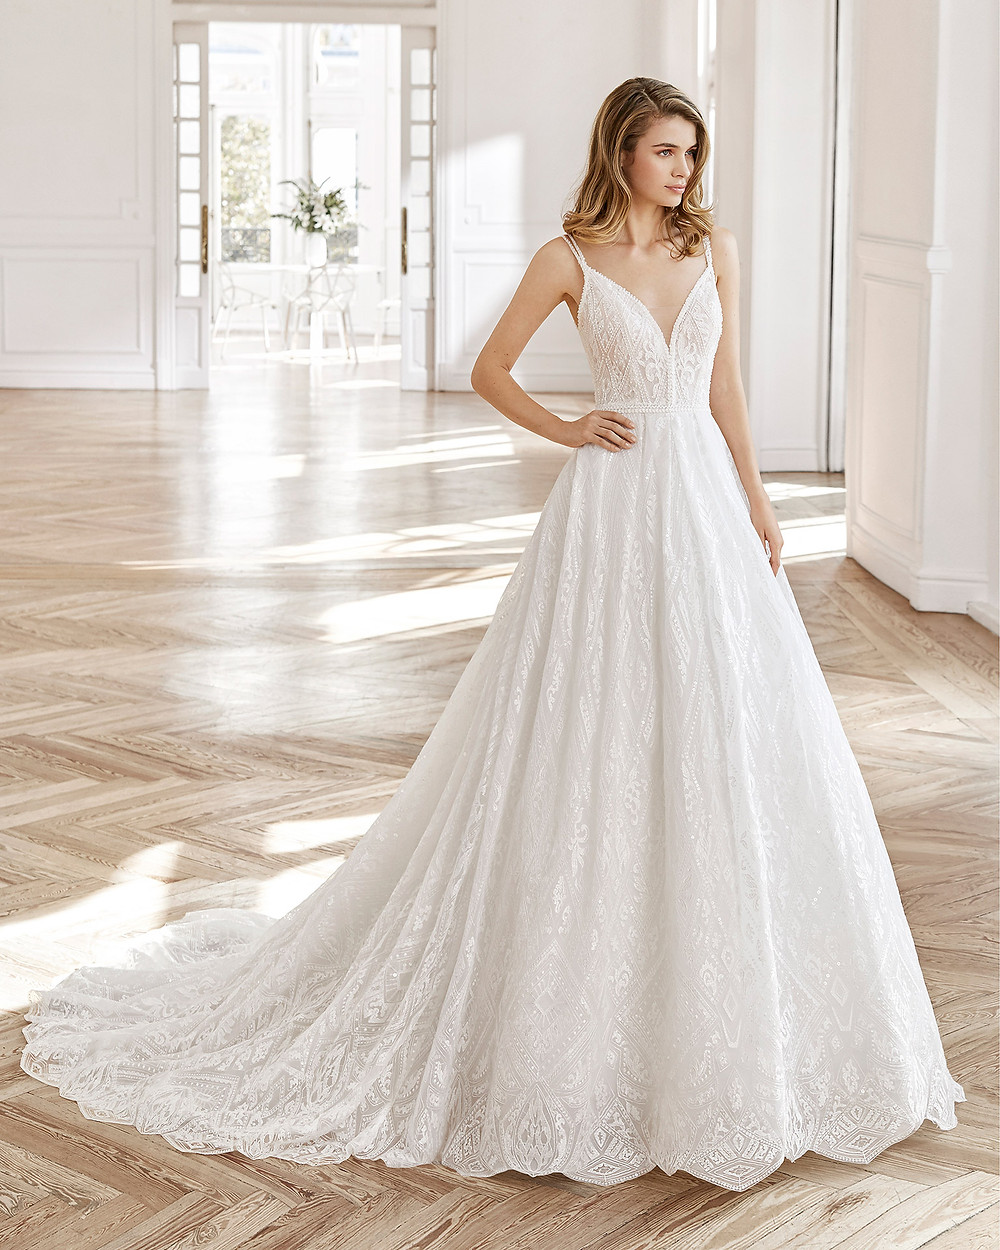 An Aire Barcelona 2020 lace A-line wedding dress with straps and a v neckline